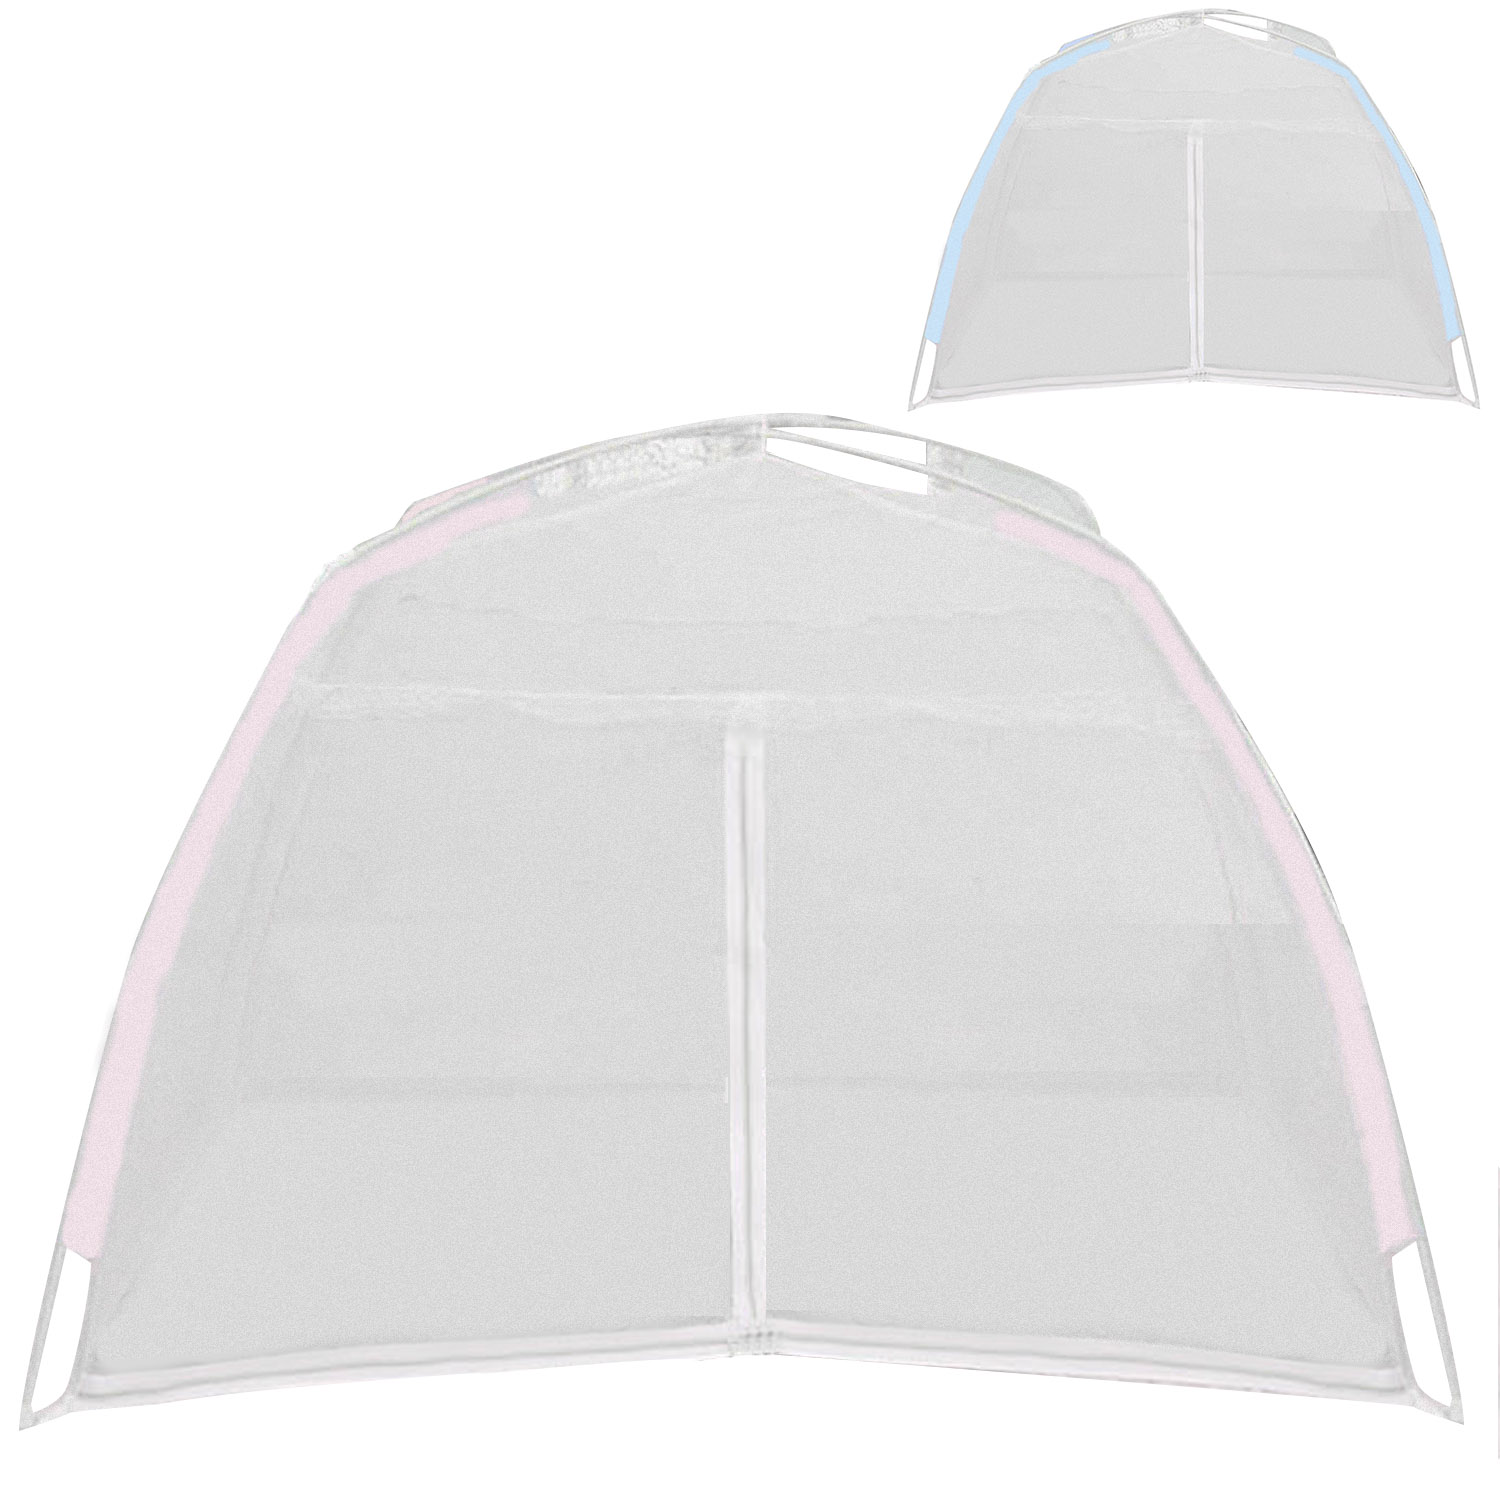 Baby bed camping - Baby Kids Infant Bed Folding Nursery Bed Crib Anti Mosquito Canopy Mosquito Net Netting Play Tent